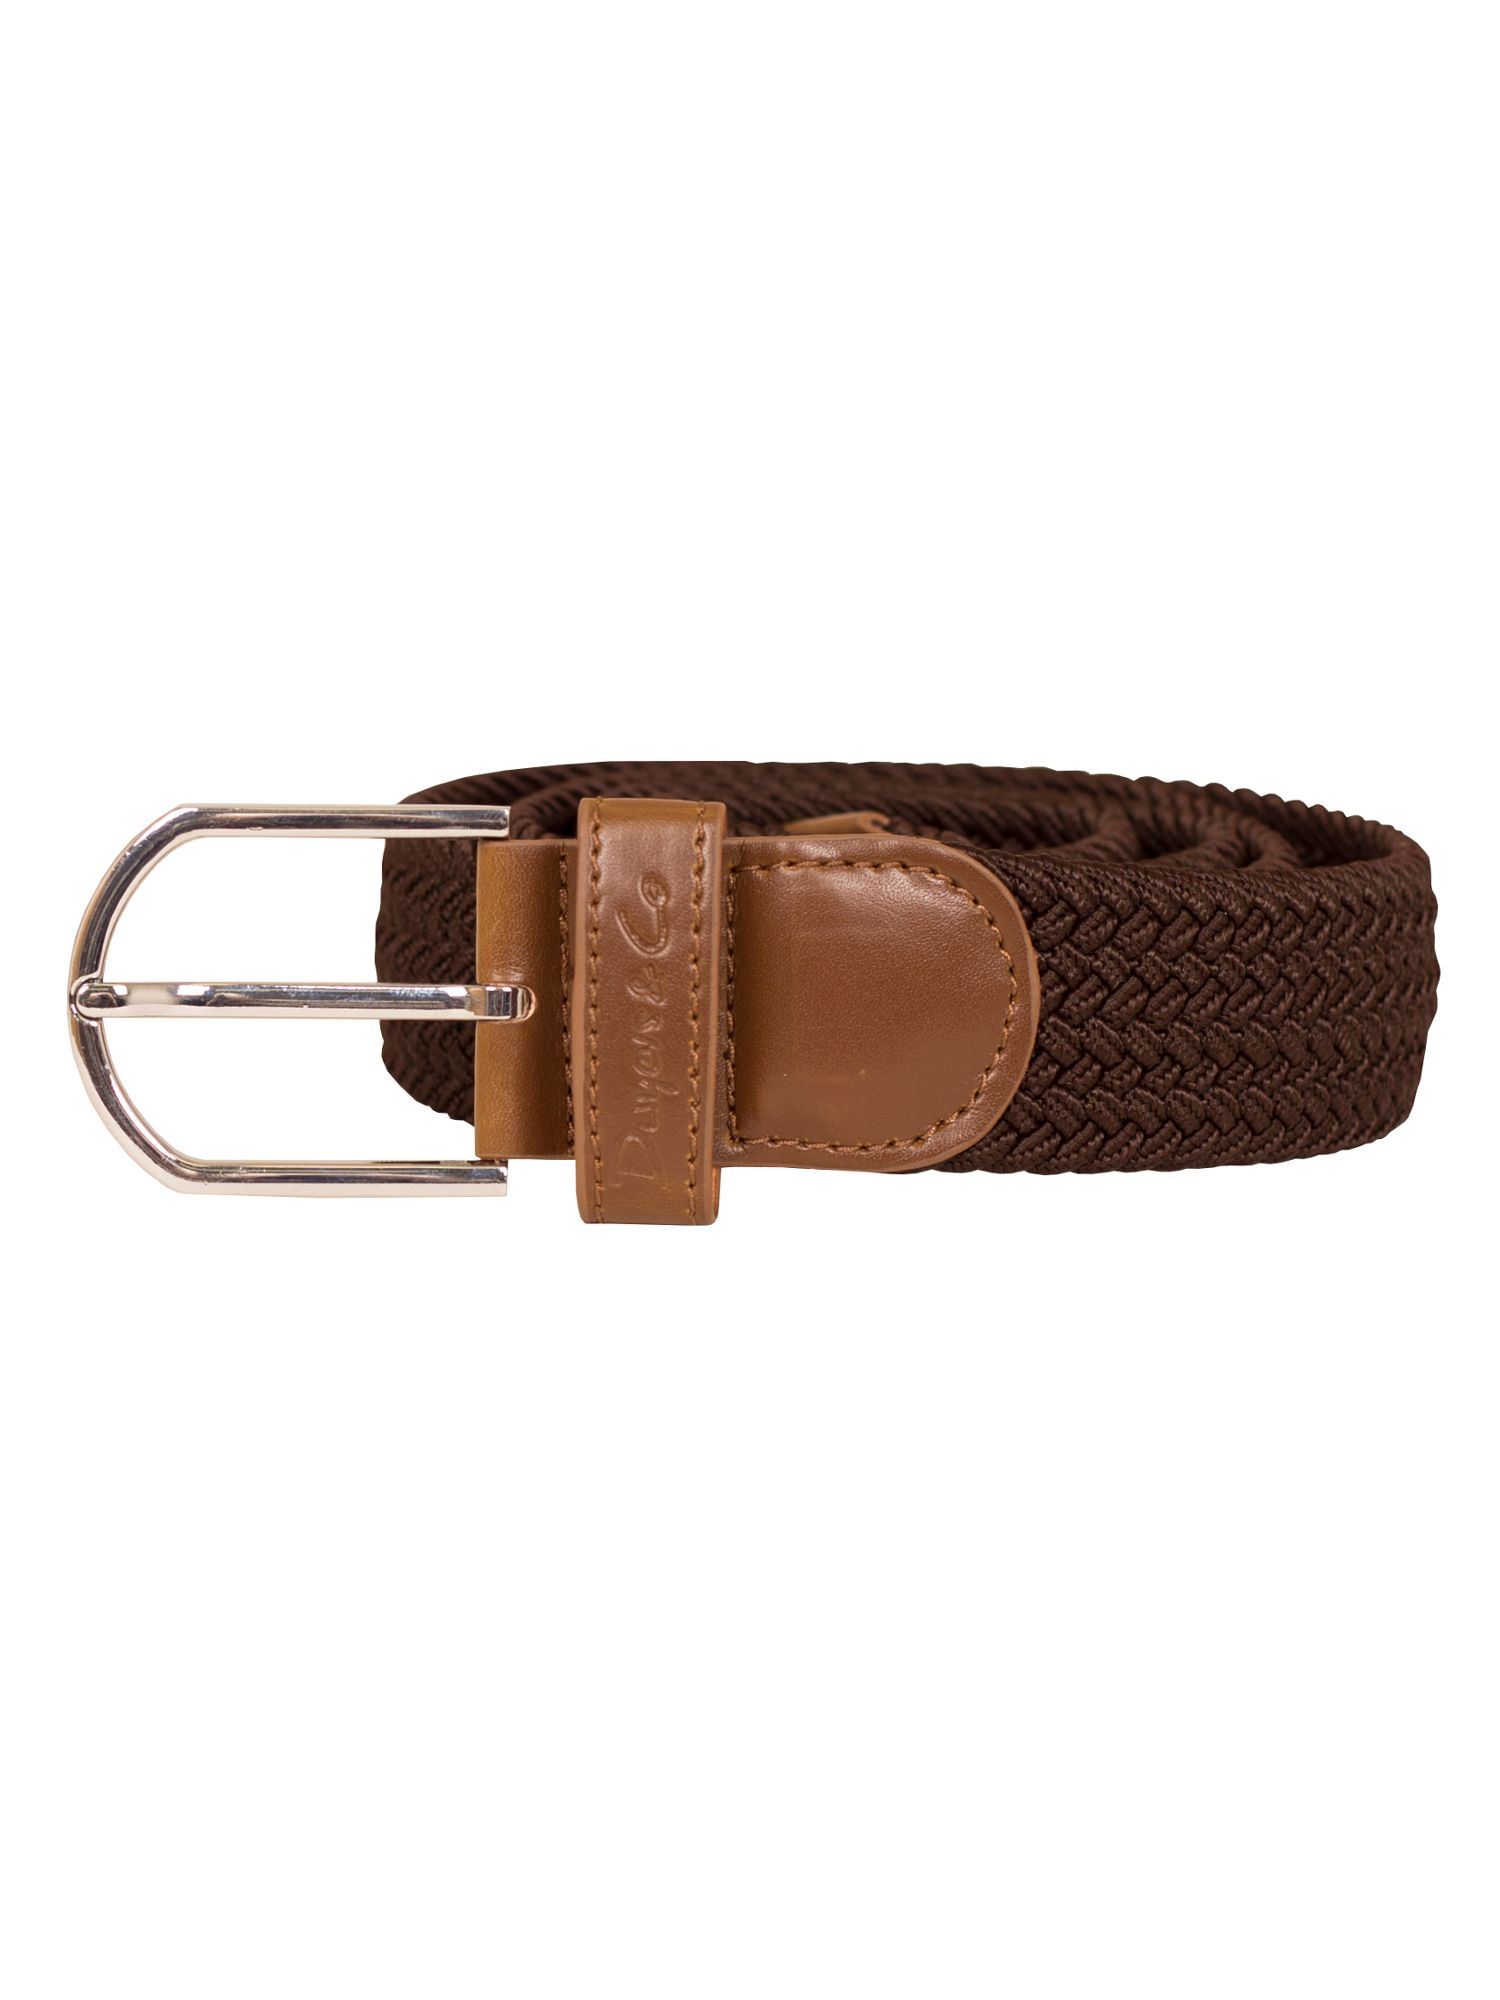 Dwyers and Co Dwyers and Co Woven Belt, Brown